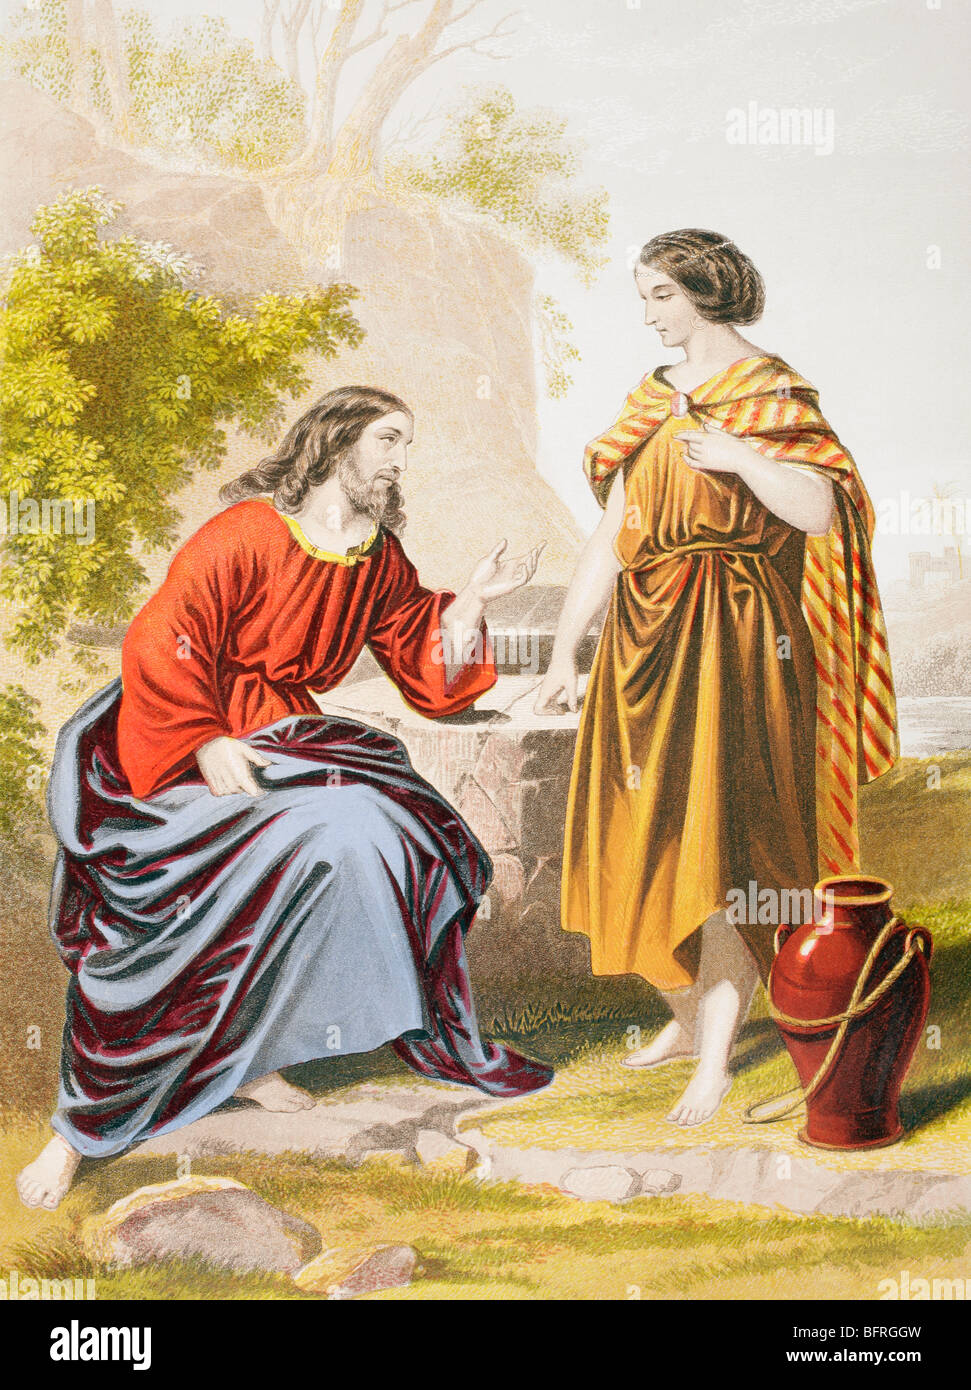 Jesus at the well with the woman of Samaria. - Stock Image